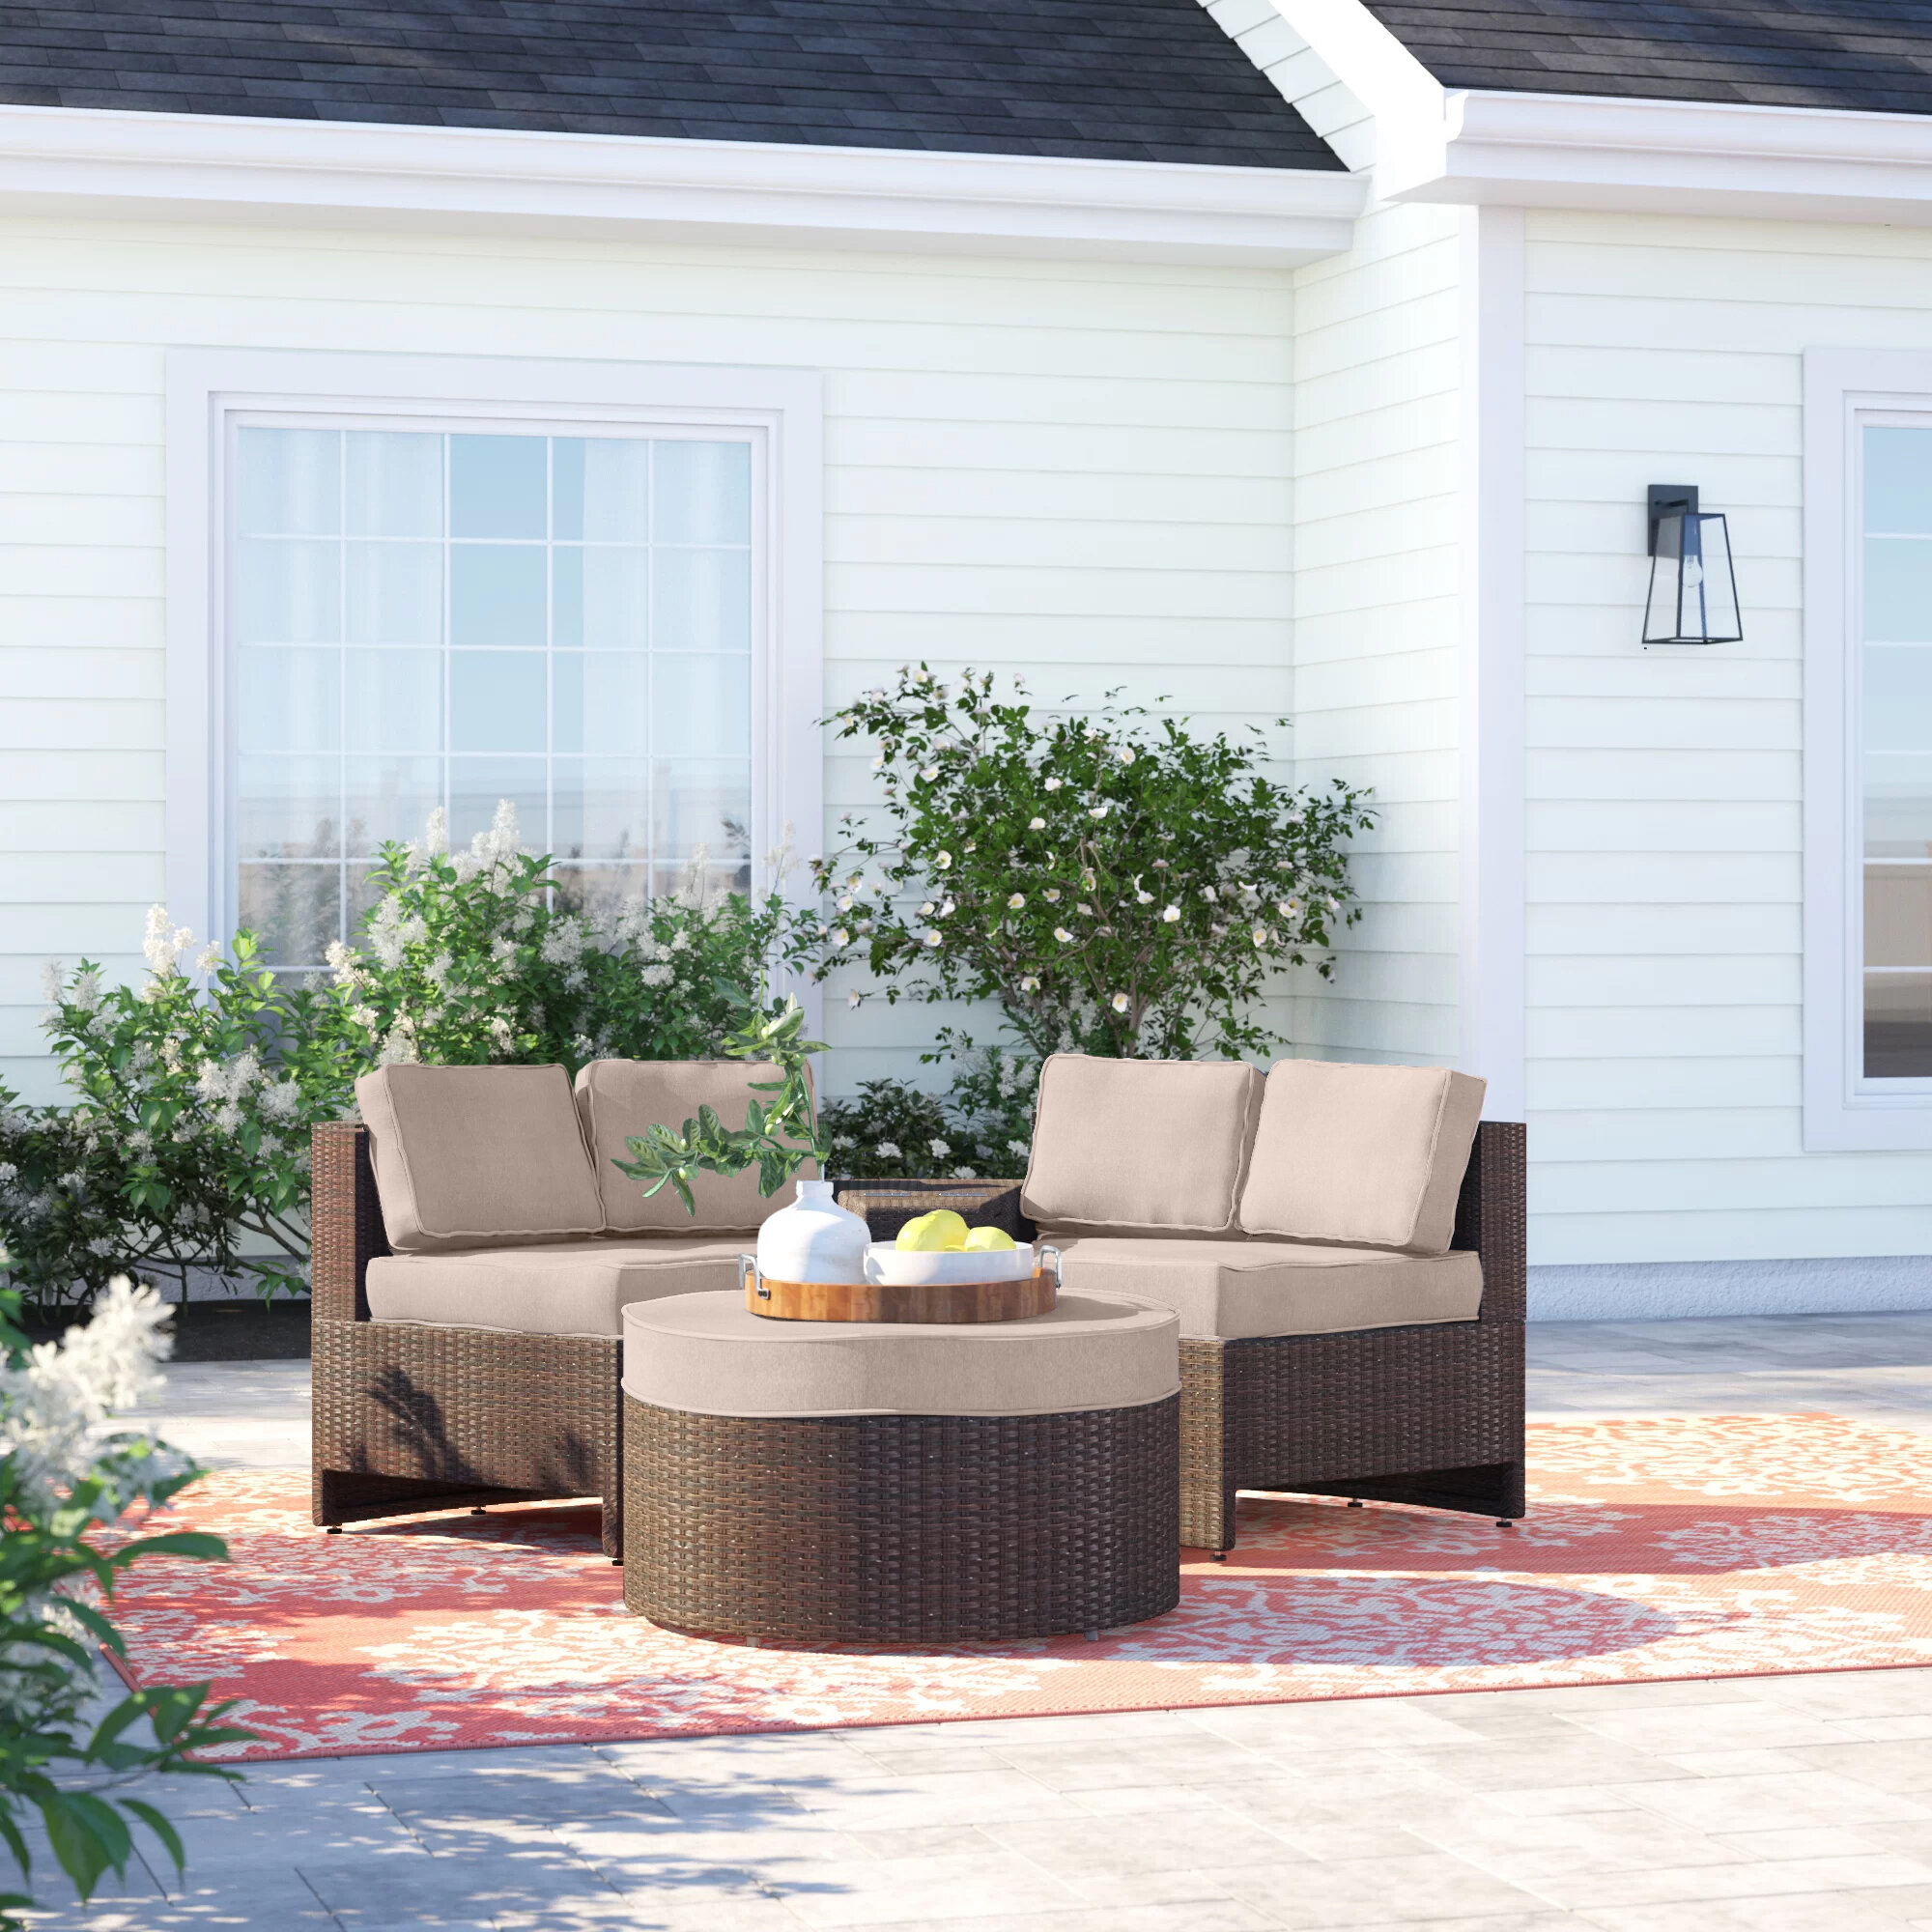 Sol 72 Outdoor Bermuda 4 Piece Rattan Sectional Seating Group With Cushions Reviews Wayfair